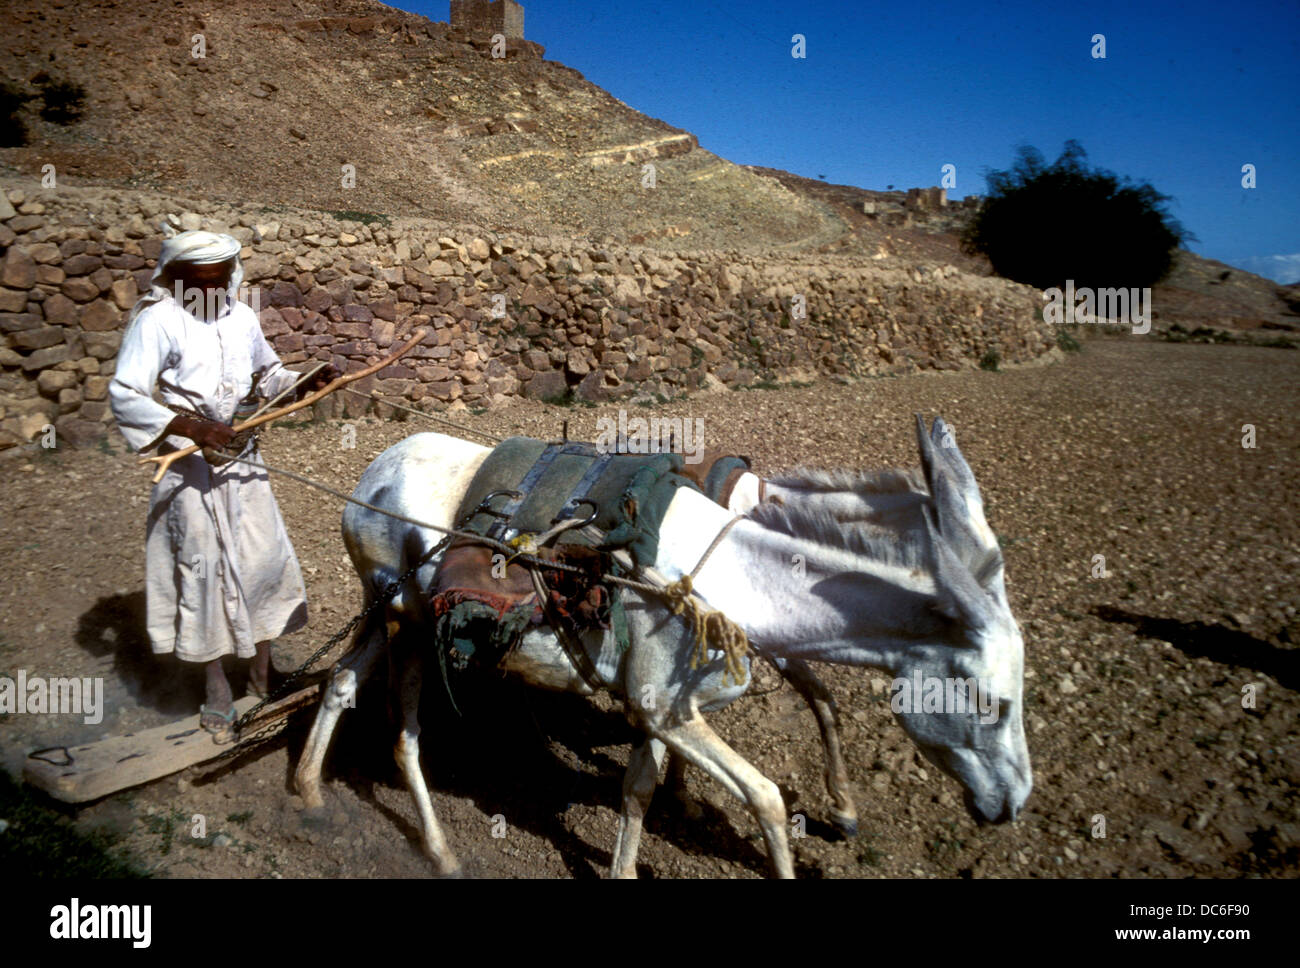 A farmer tilling the soil using a donkey-drawn wooden plough in the mountains of Yemen - Stock Image